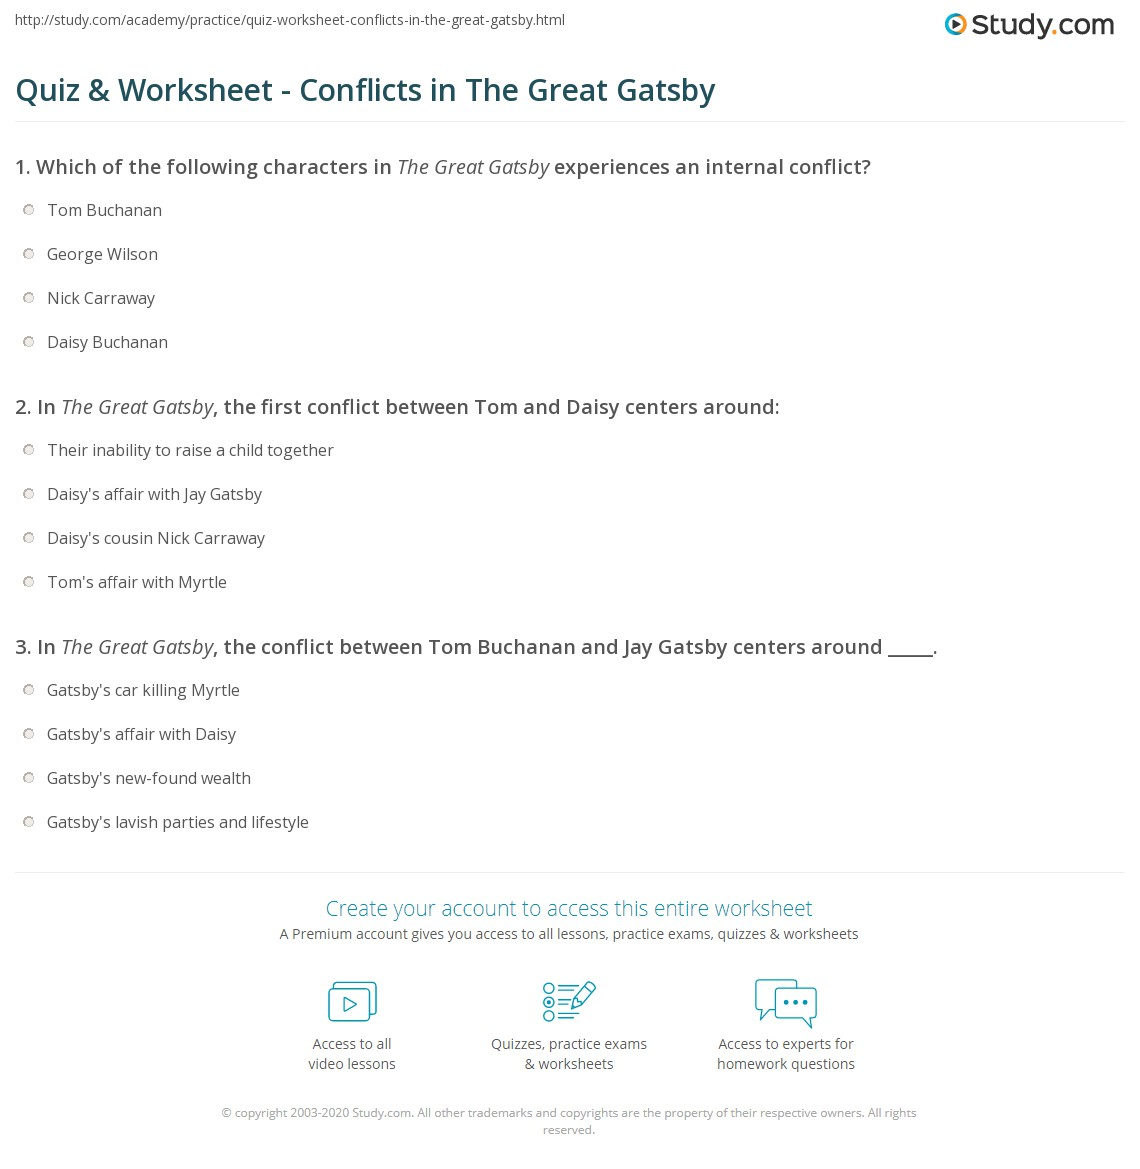 worksheet The Great Gatsby Worksheets quiz worksheet conflicts in the great gatsby study com print worksheet